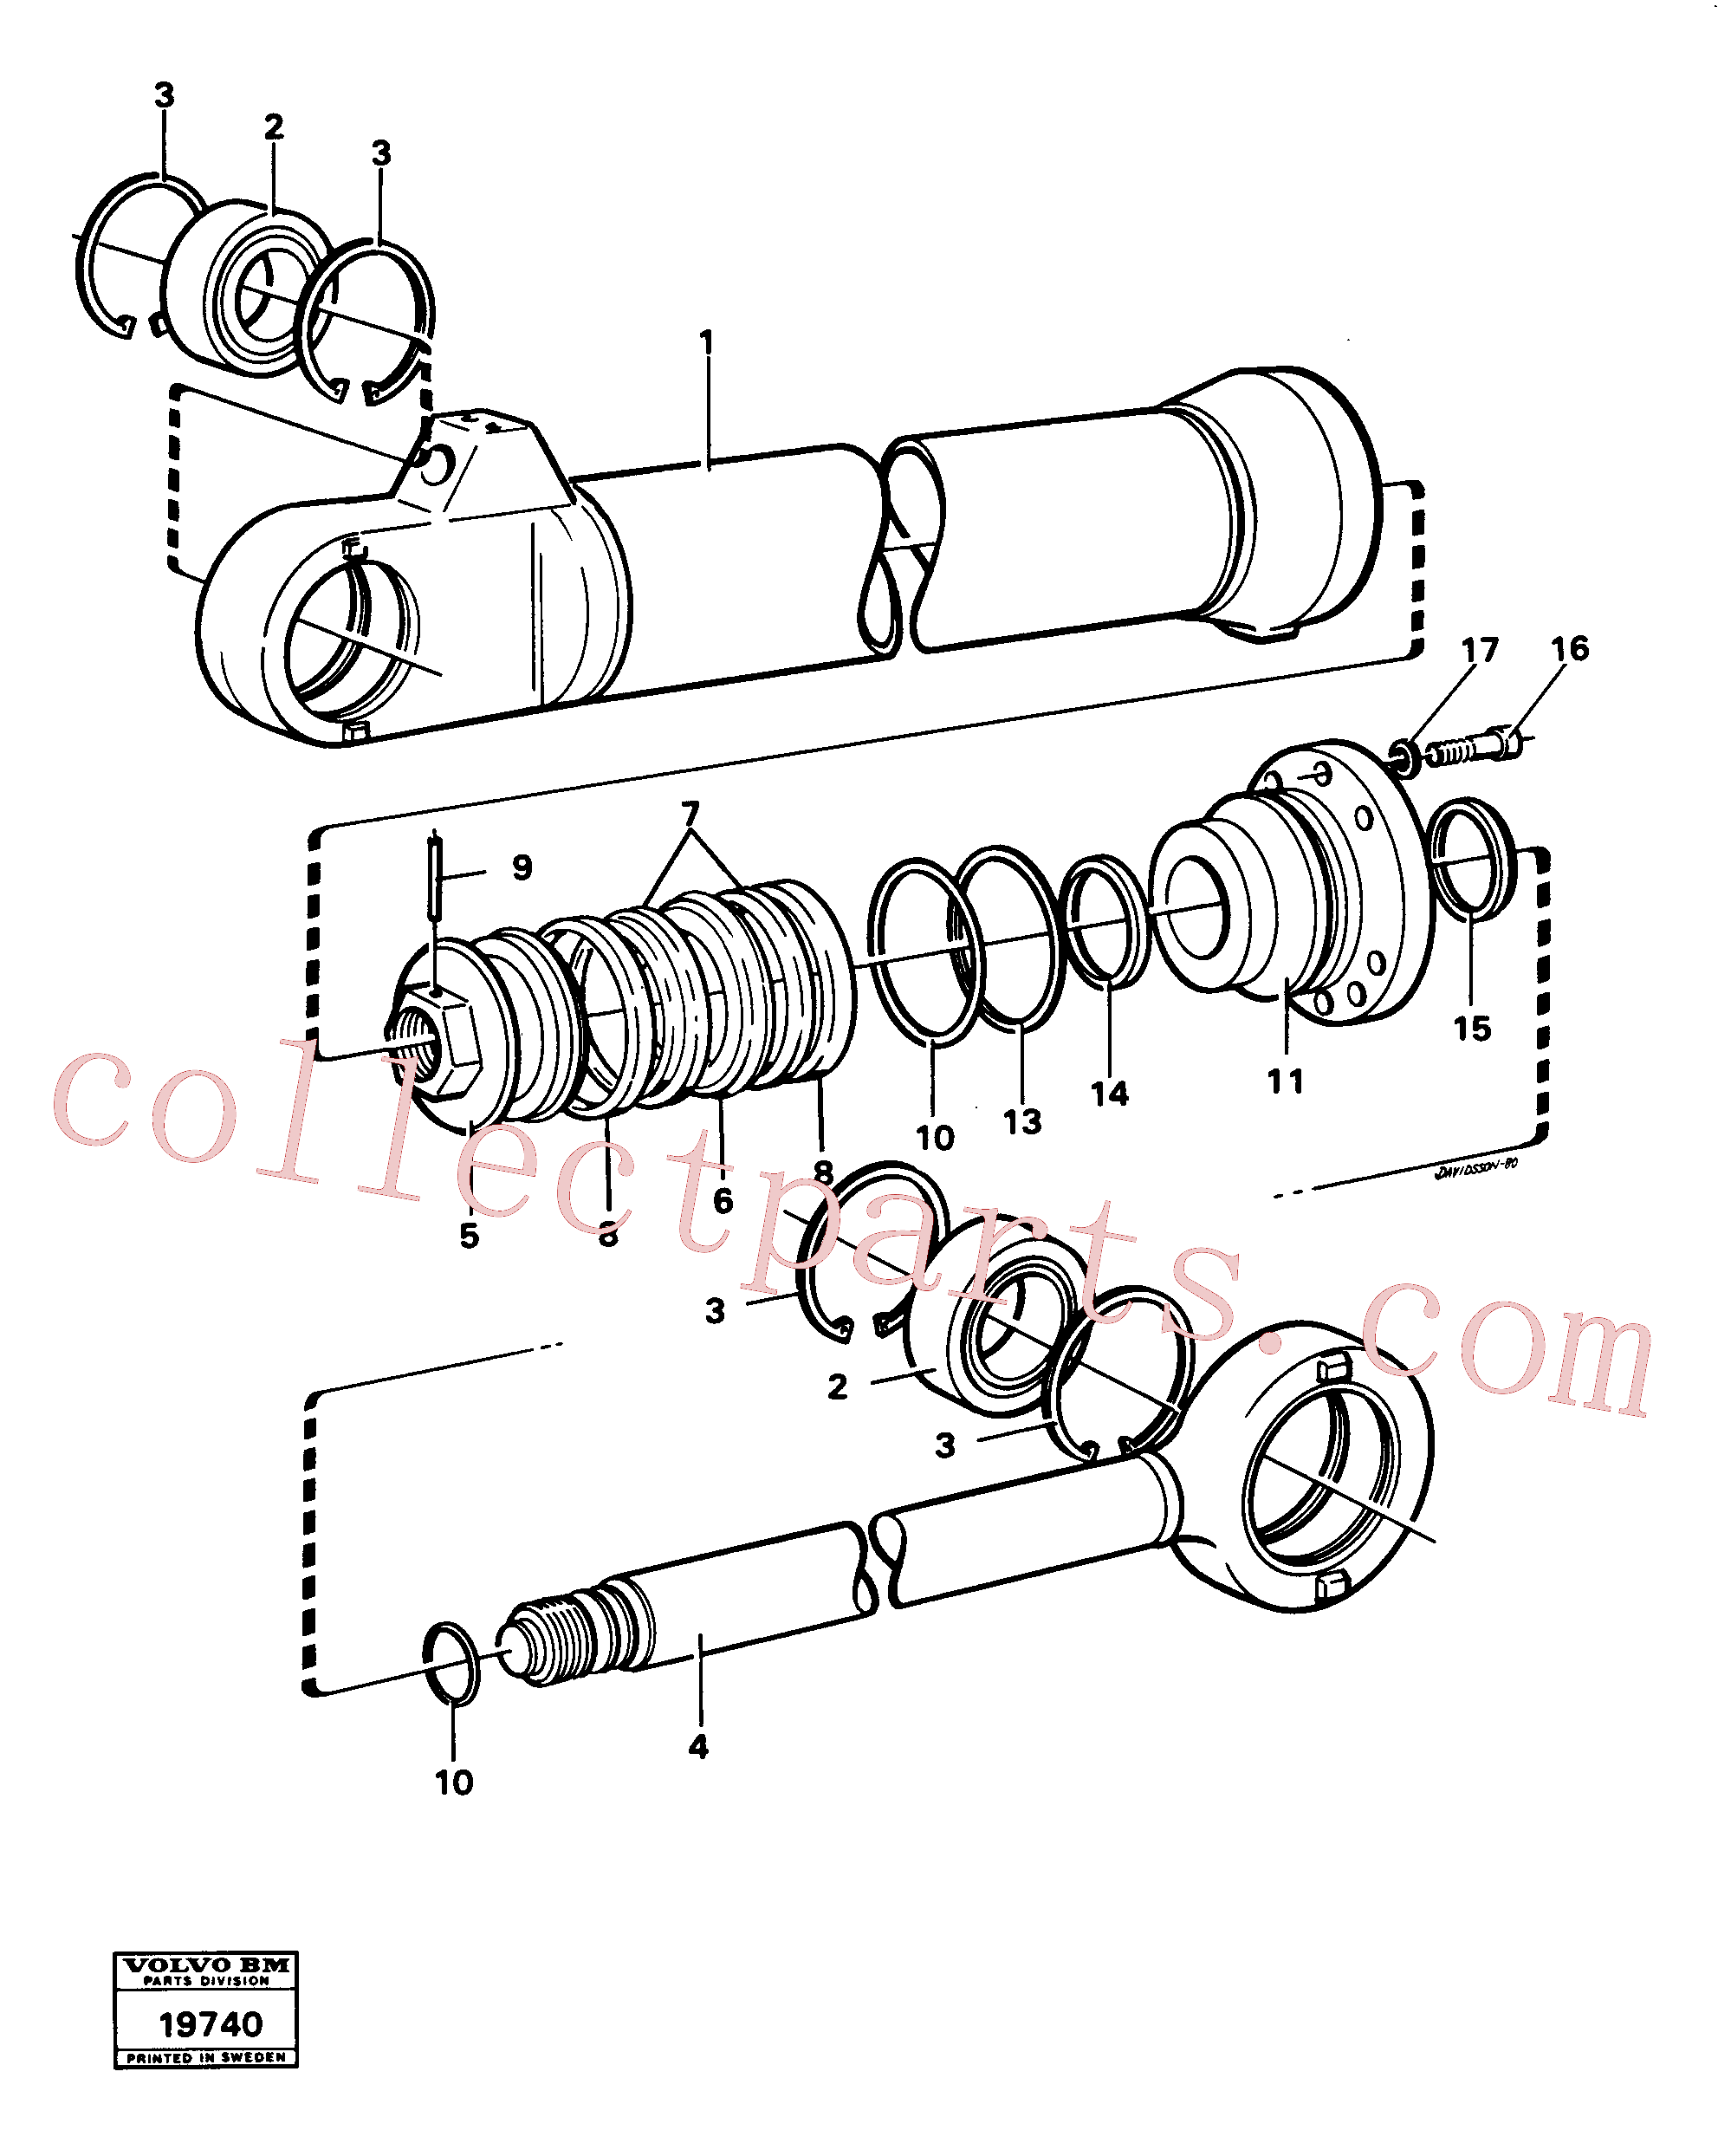 VOE4833023 for Volvo Hydraulic cylinder tilting(19740 assembly)